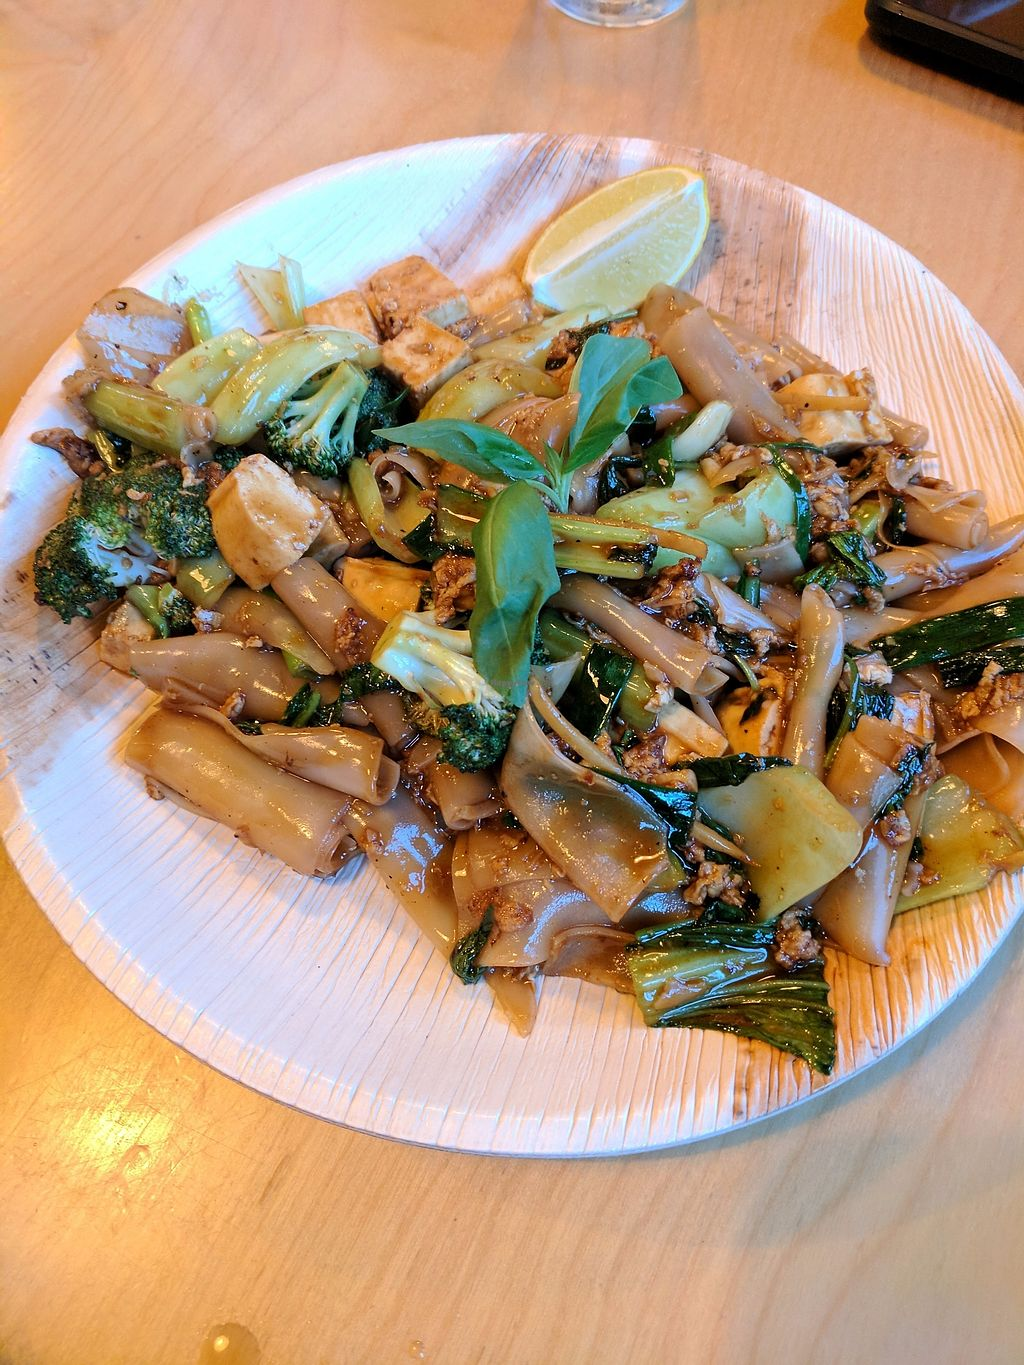 """Photo of Chang Ba Thai Restaurant  by <a href=""""/members/profile/eee135"""">eee135</a> <br/>Pad siu (ordered by vegetarian friend with egg but can be ordered without) <br/> October 14, 2017  - <a href='/contact/abuse/image/102849/314998'>Report</a>"""